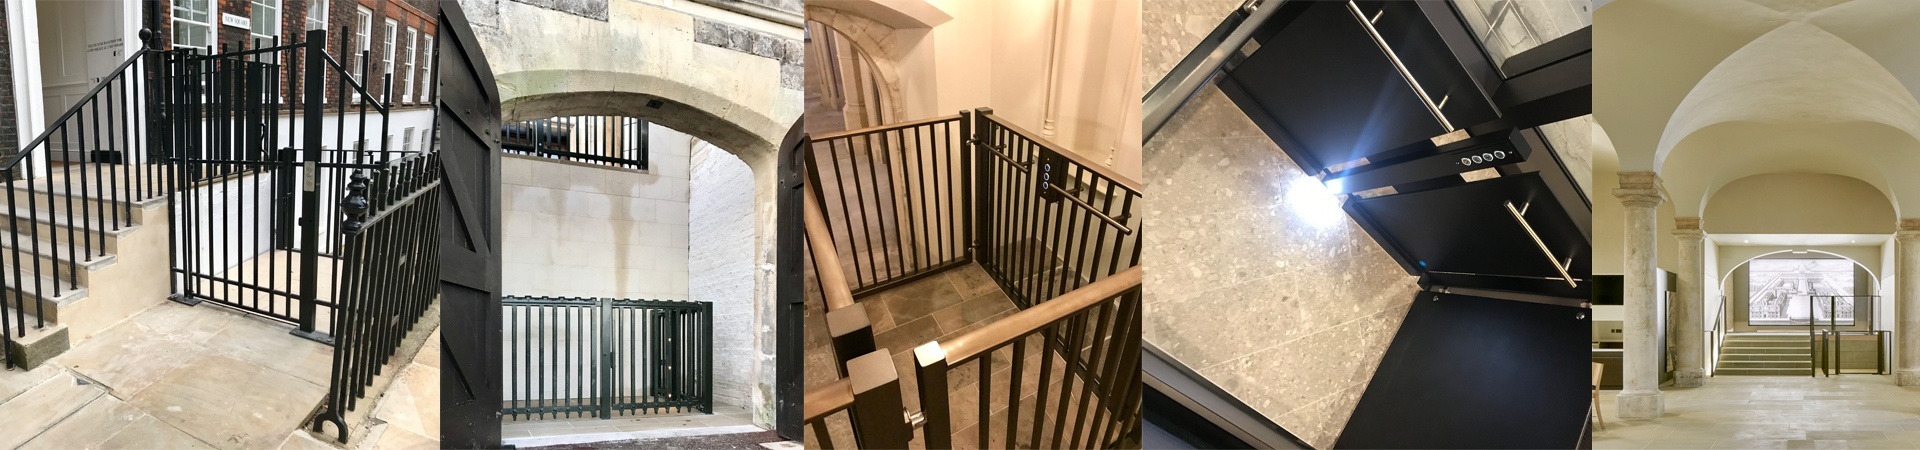 Custom Disabled access lift